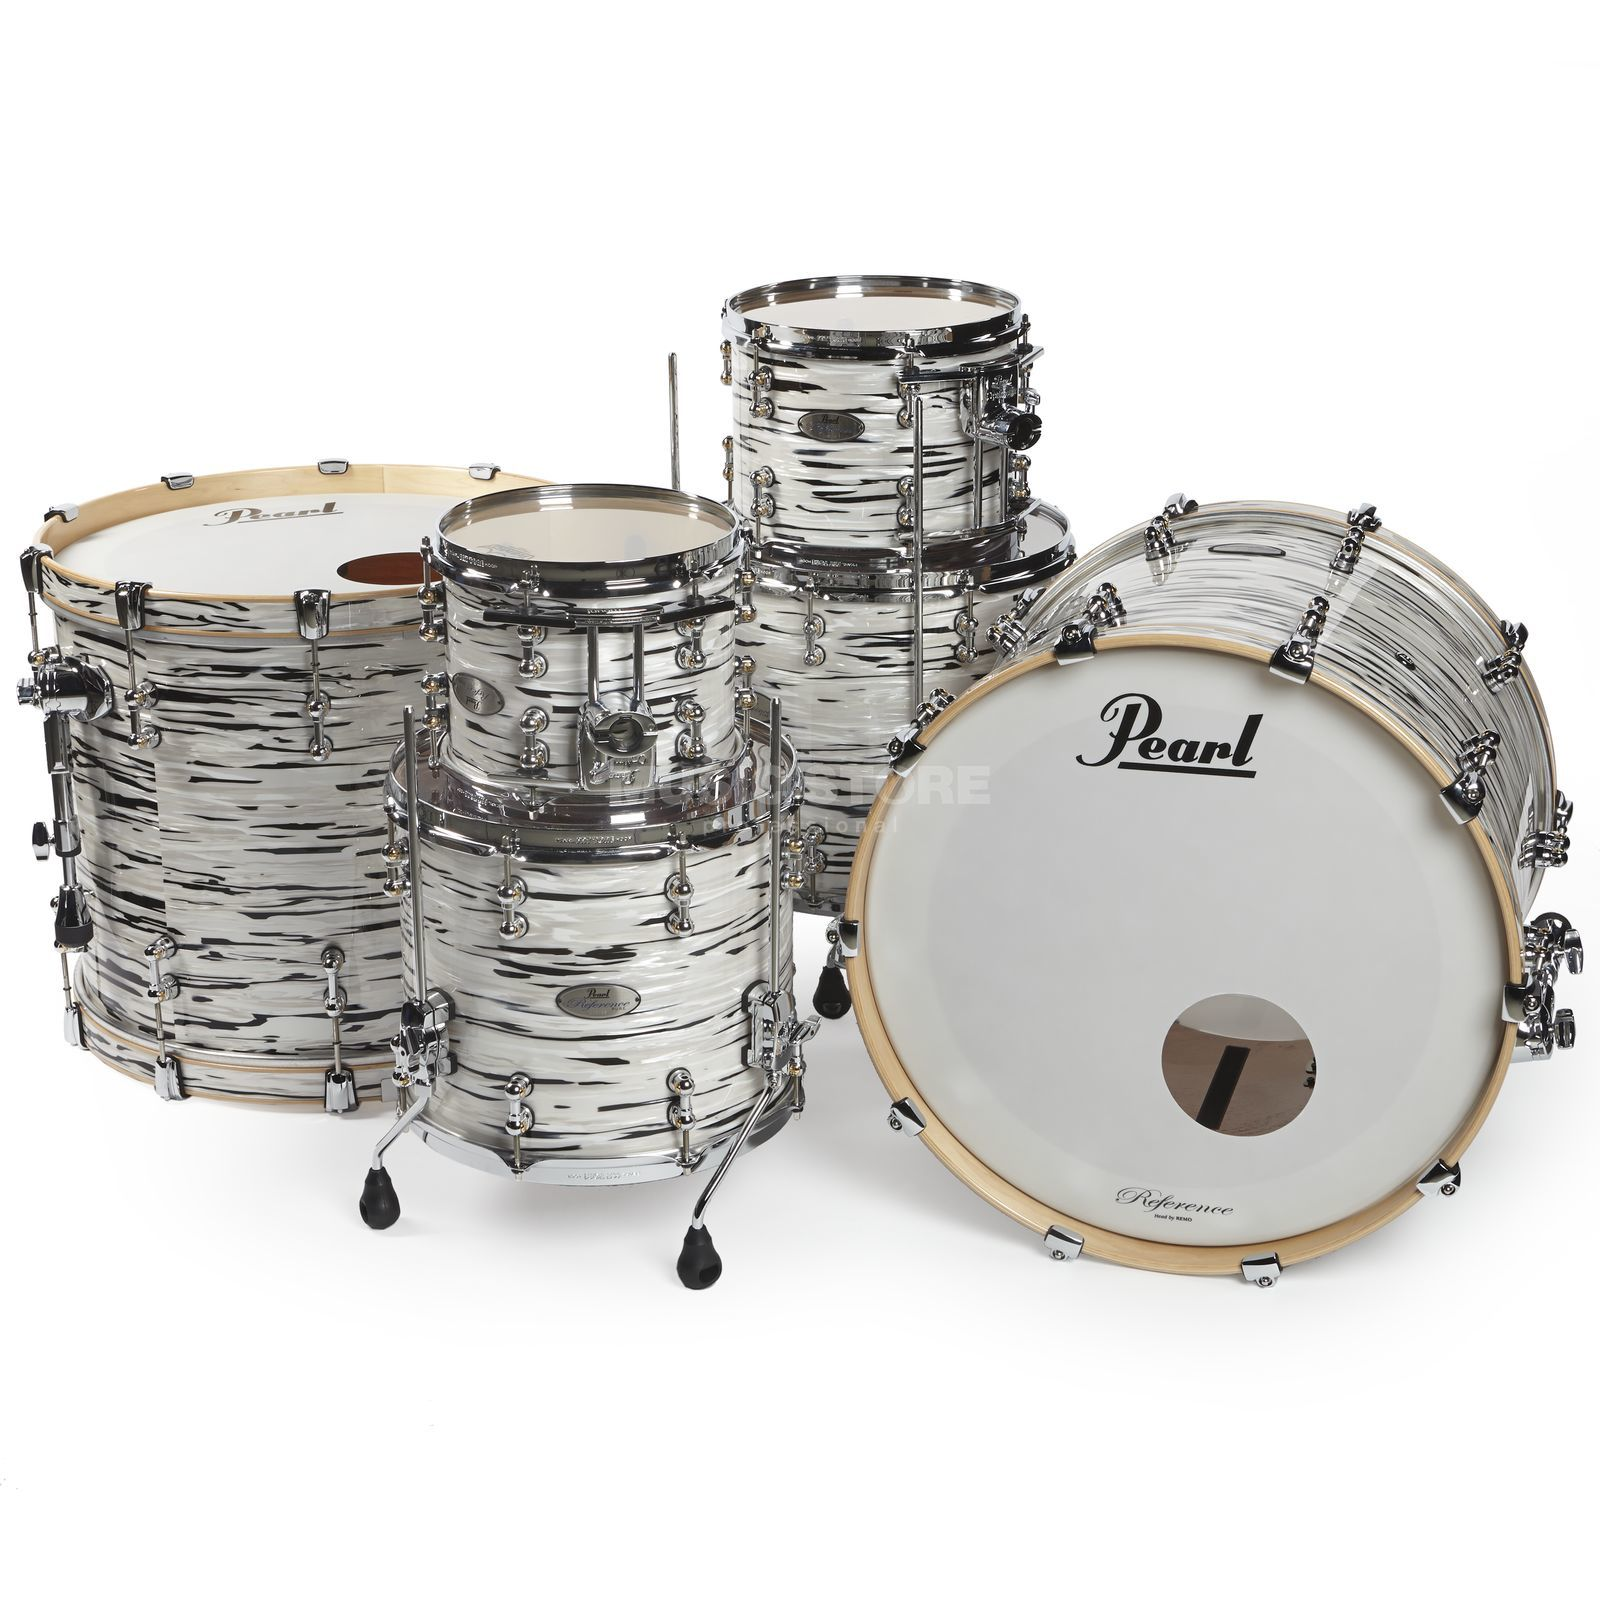 Pearl Reference Pure Double Bass Shell-Set Black & White Oyster Zdjęcie produktu